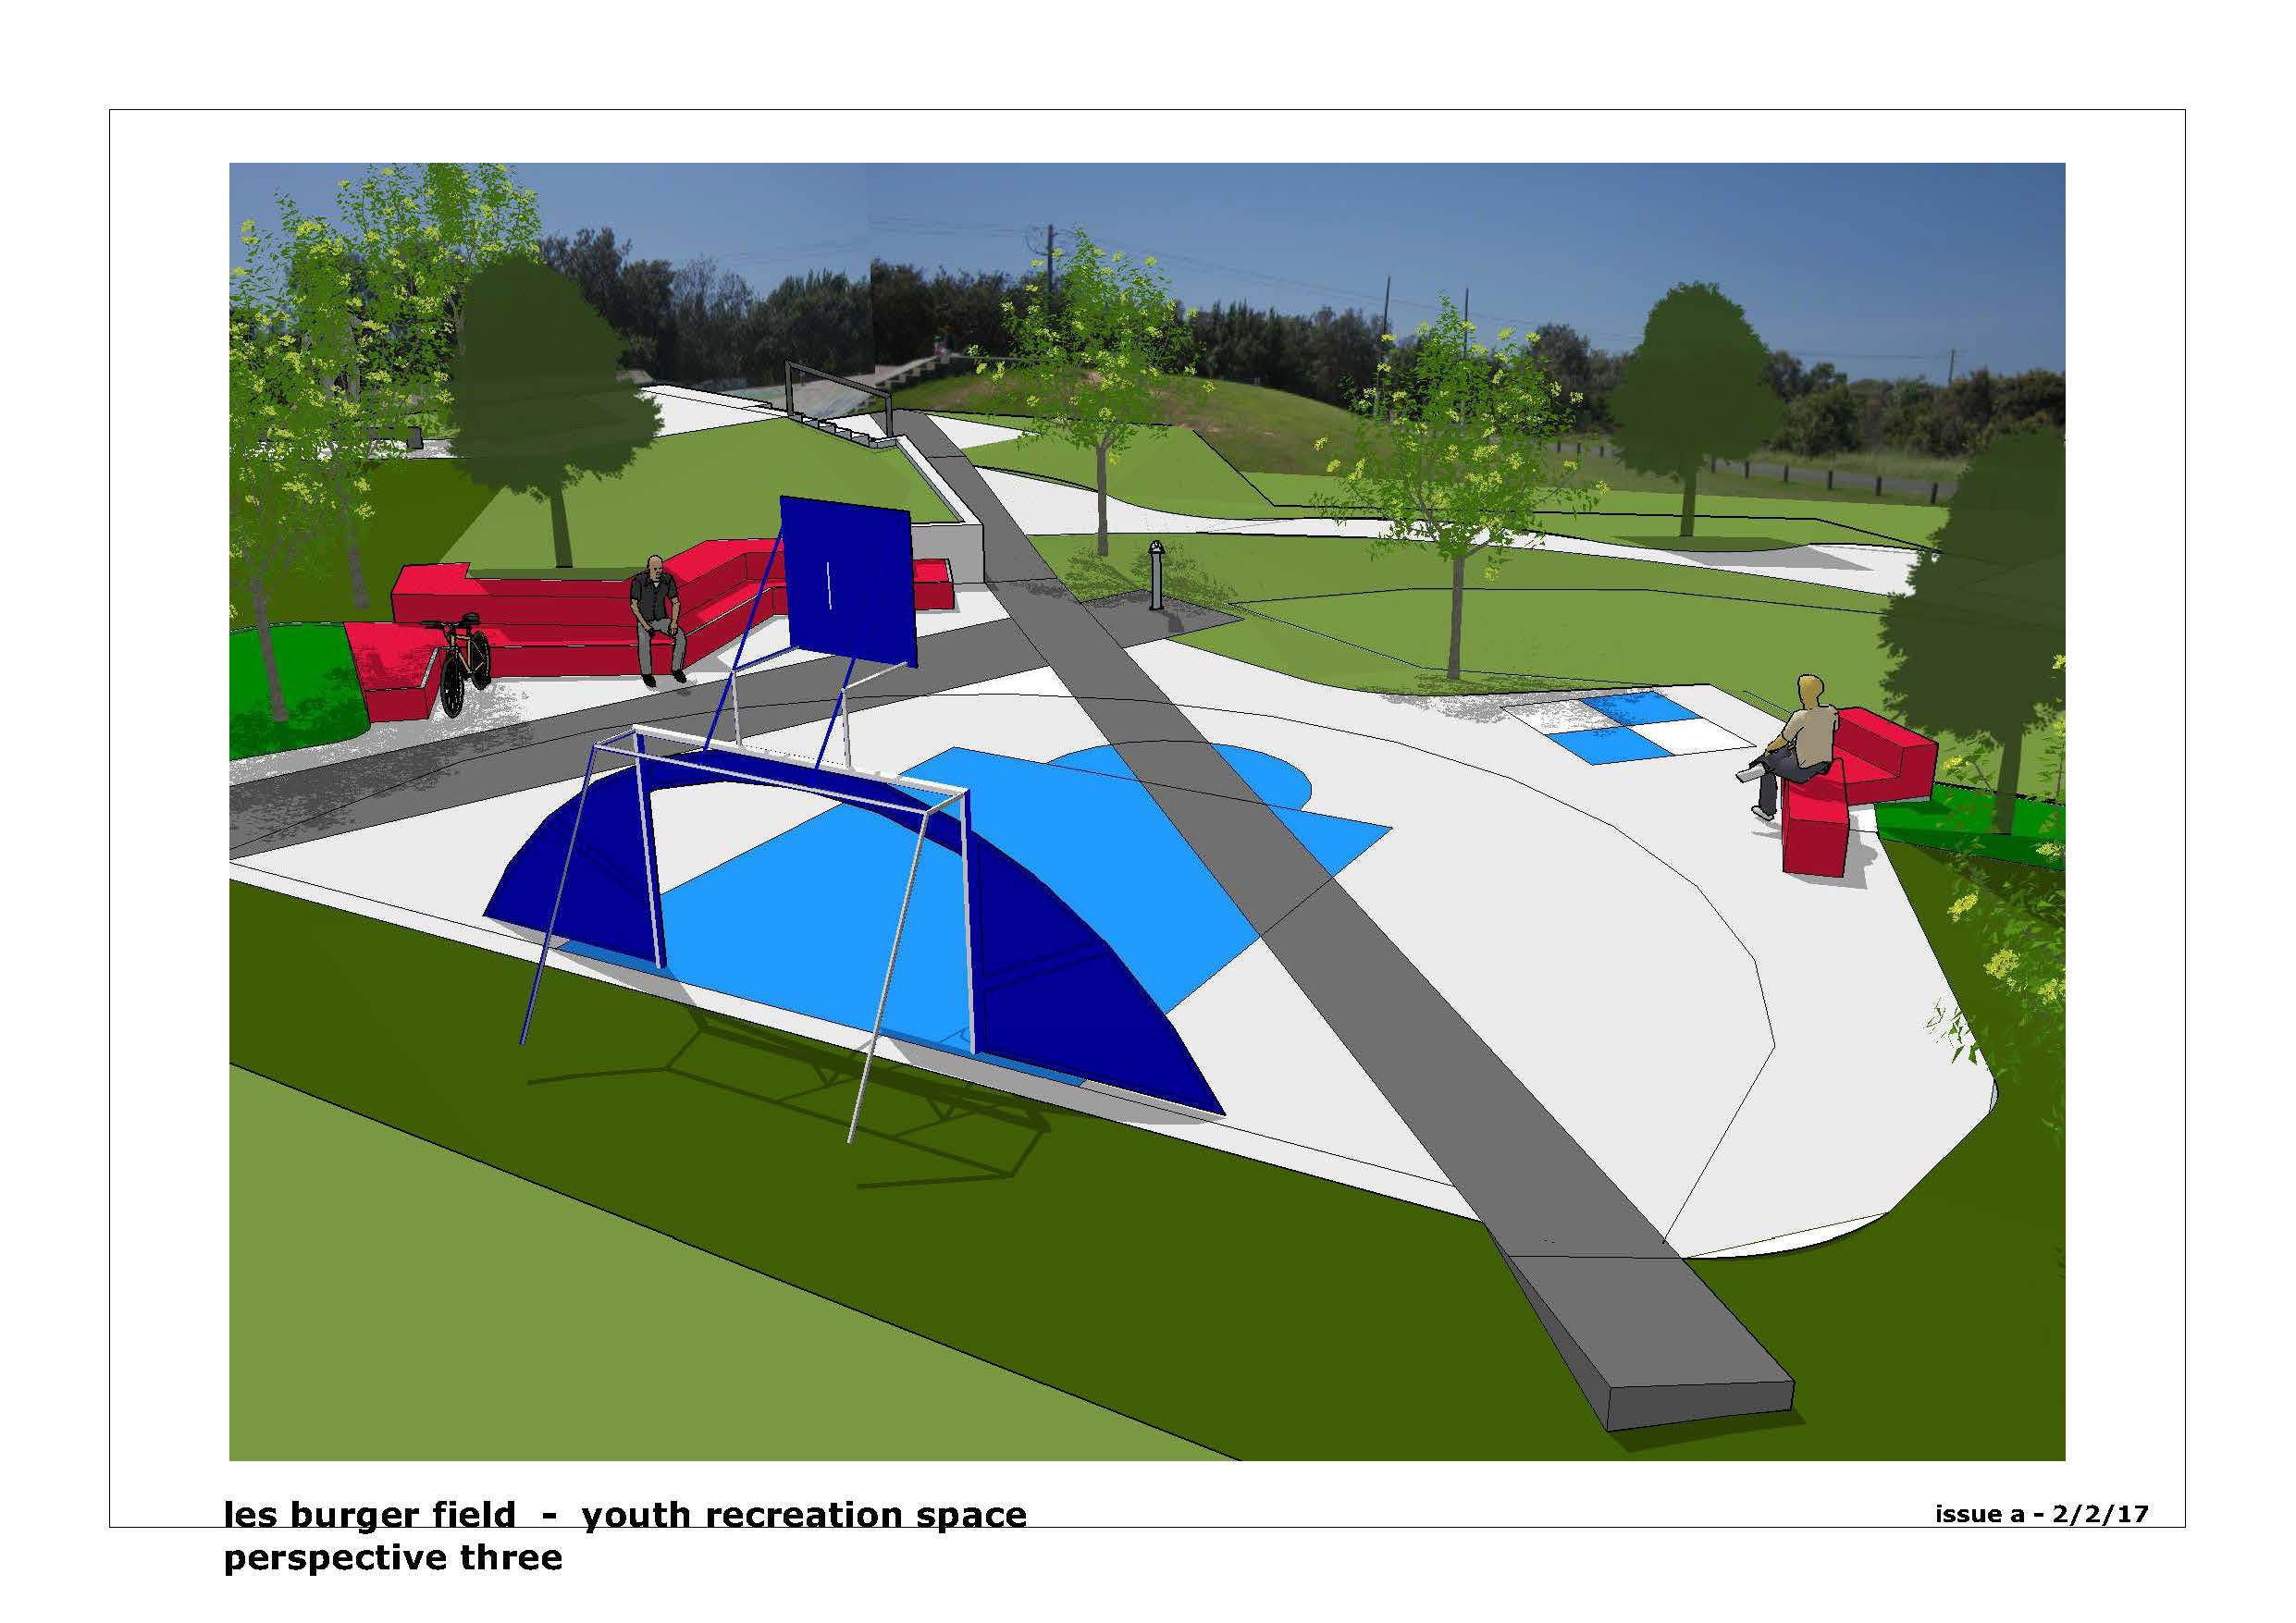 Artist's impression of the expanded youth recreation area - View 3